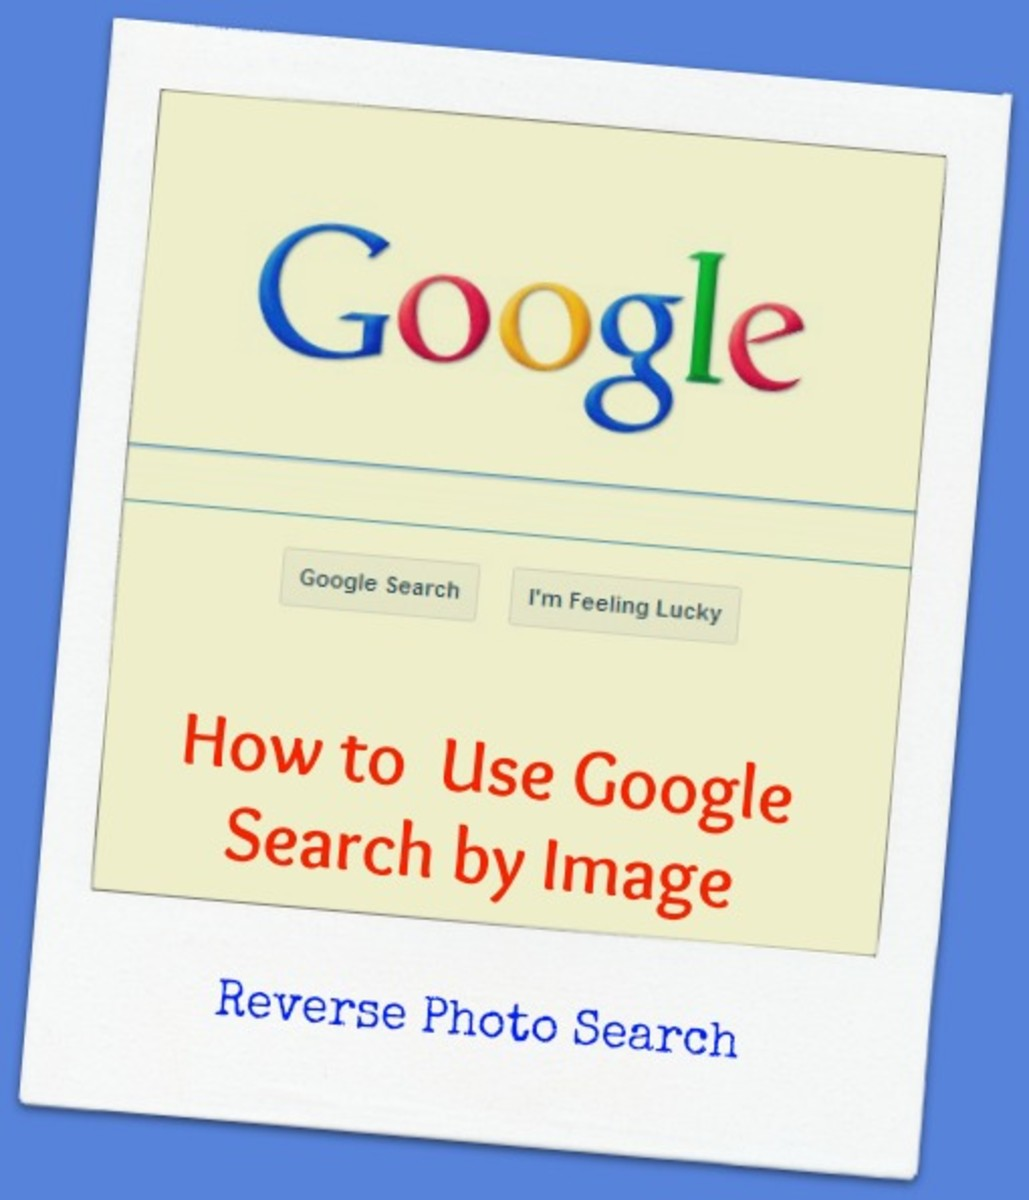 Find similar images buy using the Google Reverse Image Search